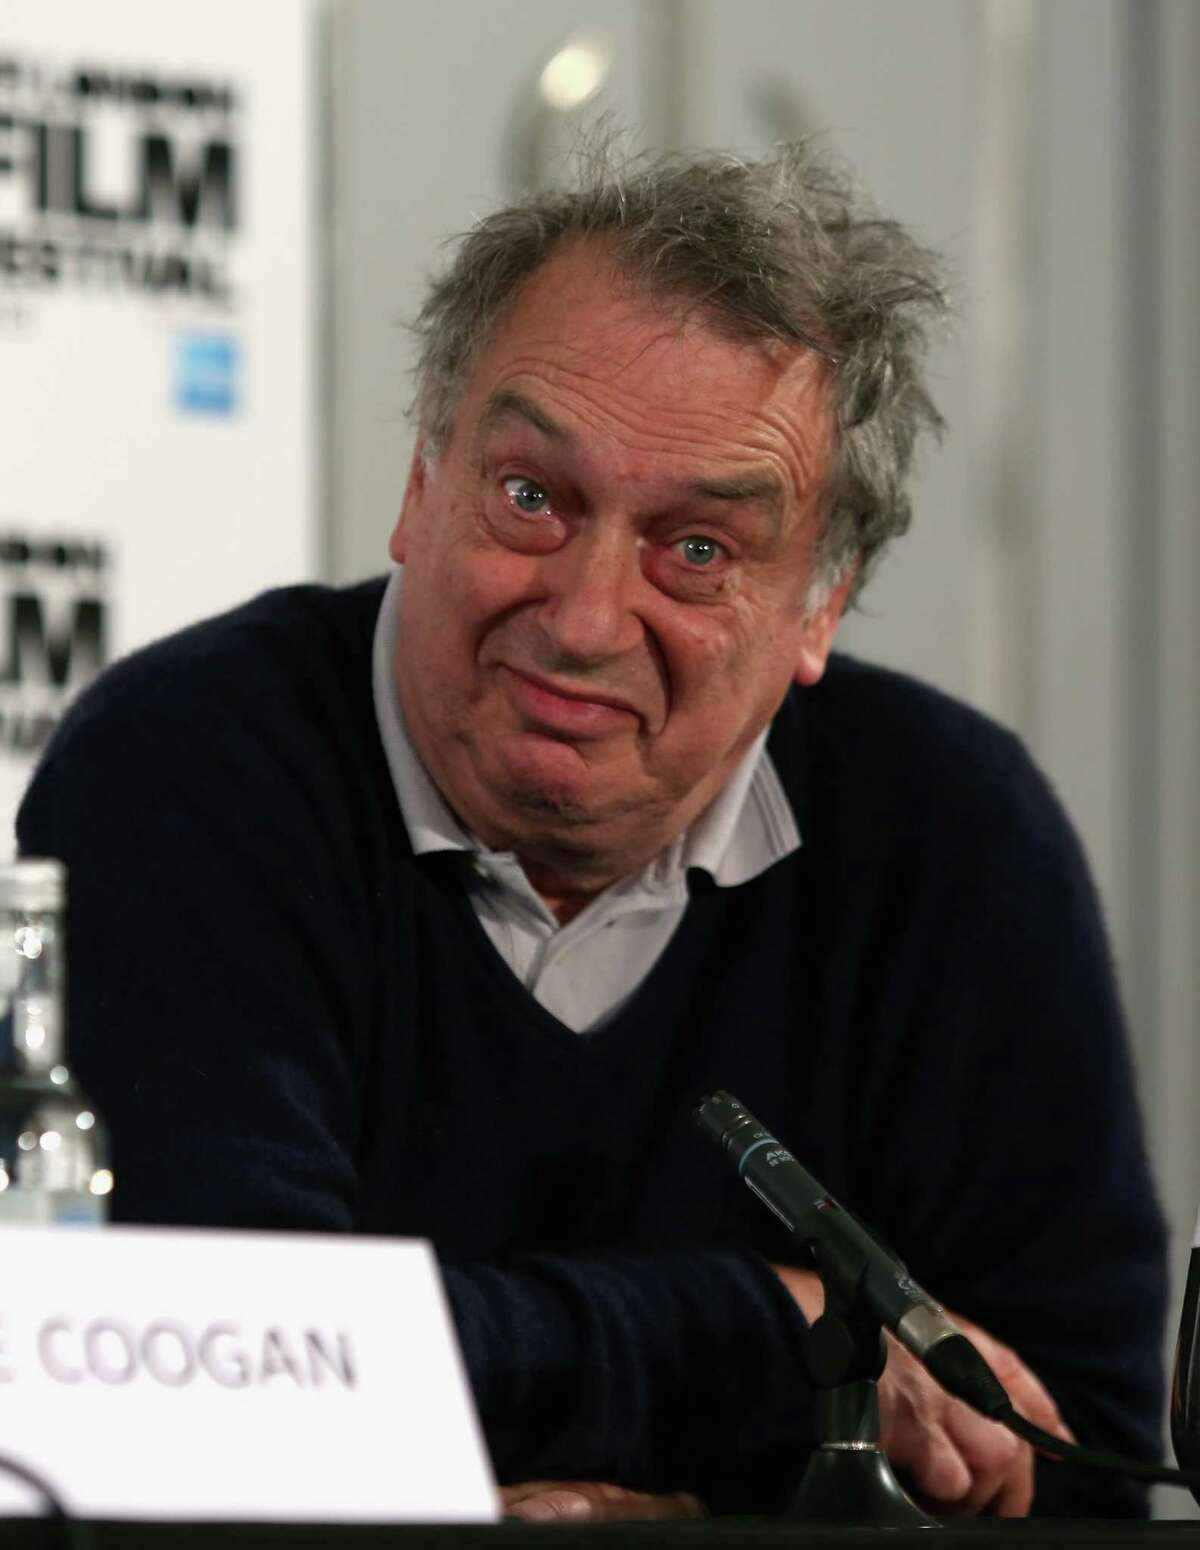 """LONDON, ENGLAND - OCTOBER 16: Director Stephen Frears attends the """"Philomena"""" press conference during the 57th BFI London Film Festival at Claridges Hotel on October 16, 2013 in London, England. (Photo by Tim P. Whitby/Getty Images for BFI)"""